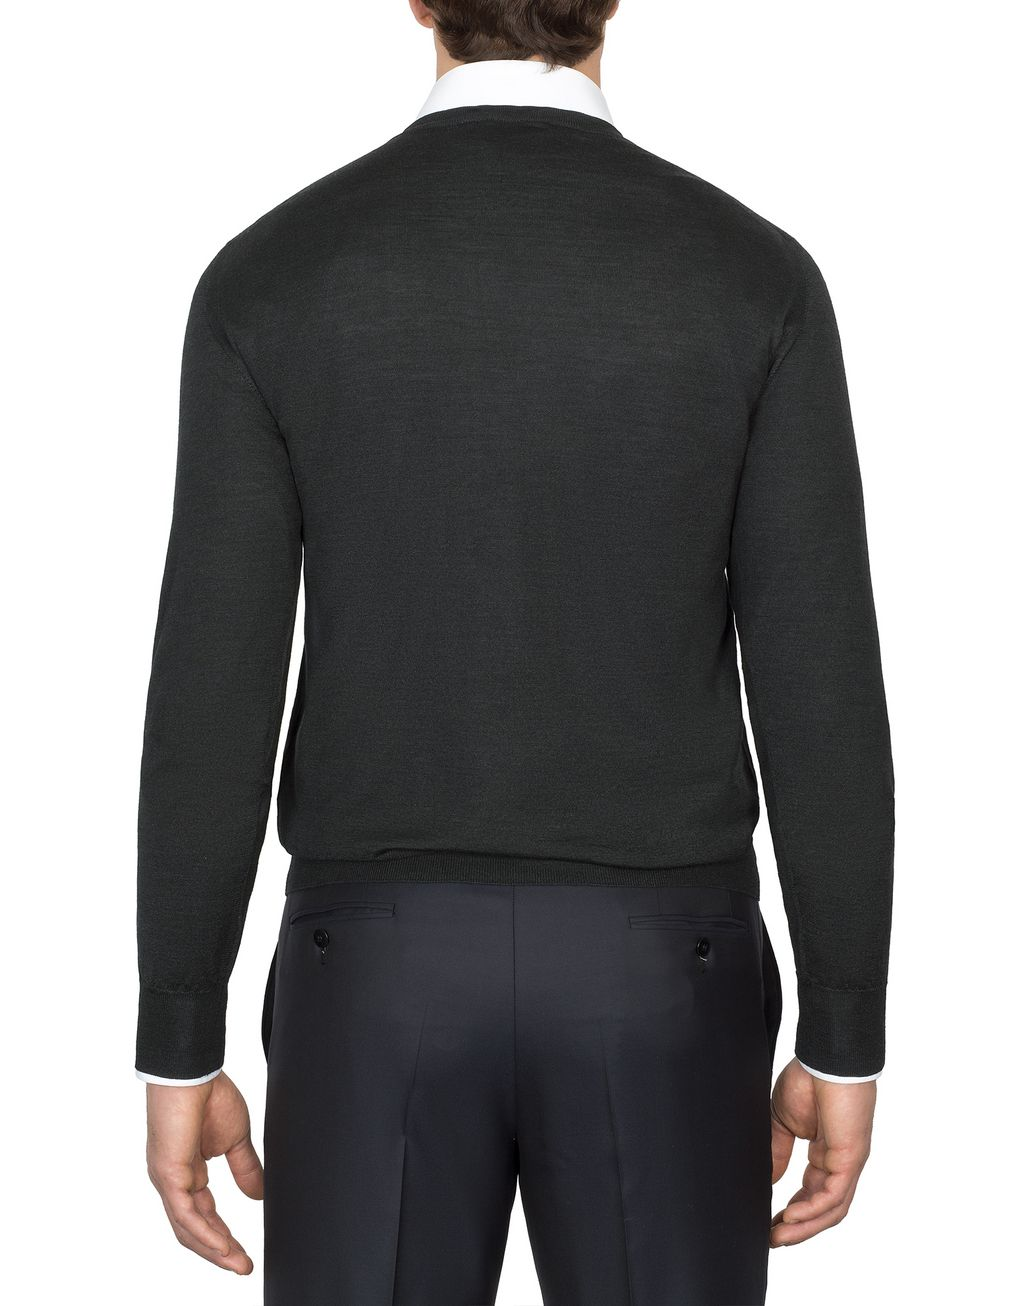 BRIONI 'Essential' Gray V-Neck Sweater Knitwear [*** pickupInStoreShippingNotGuaranteed_info ***] d